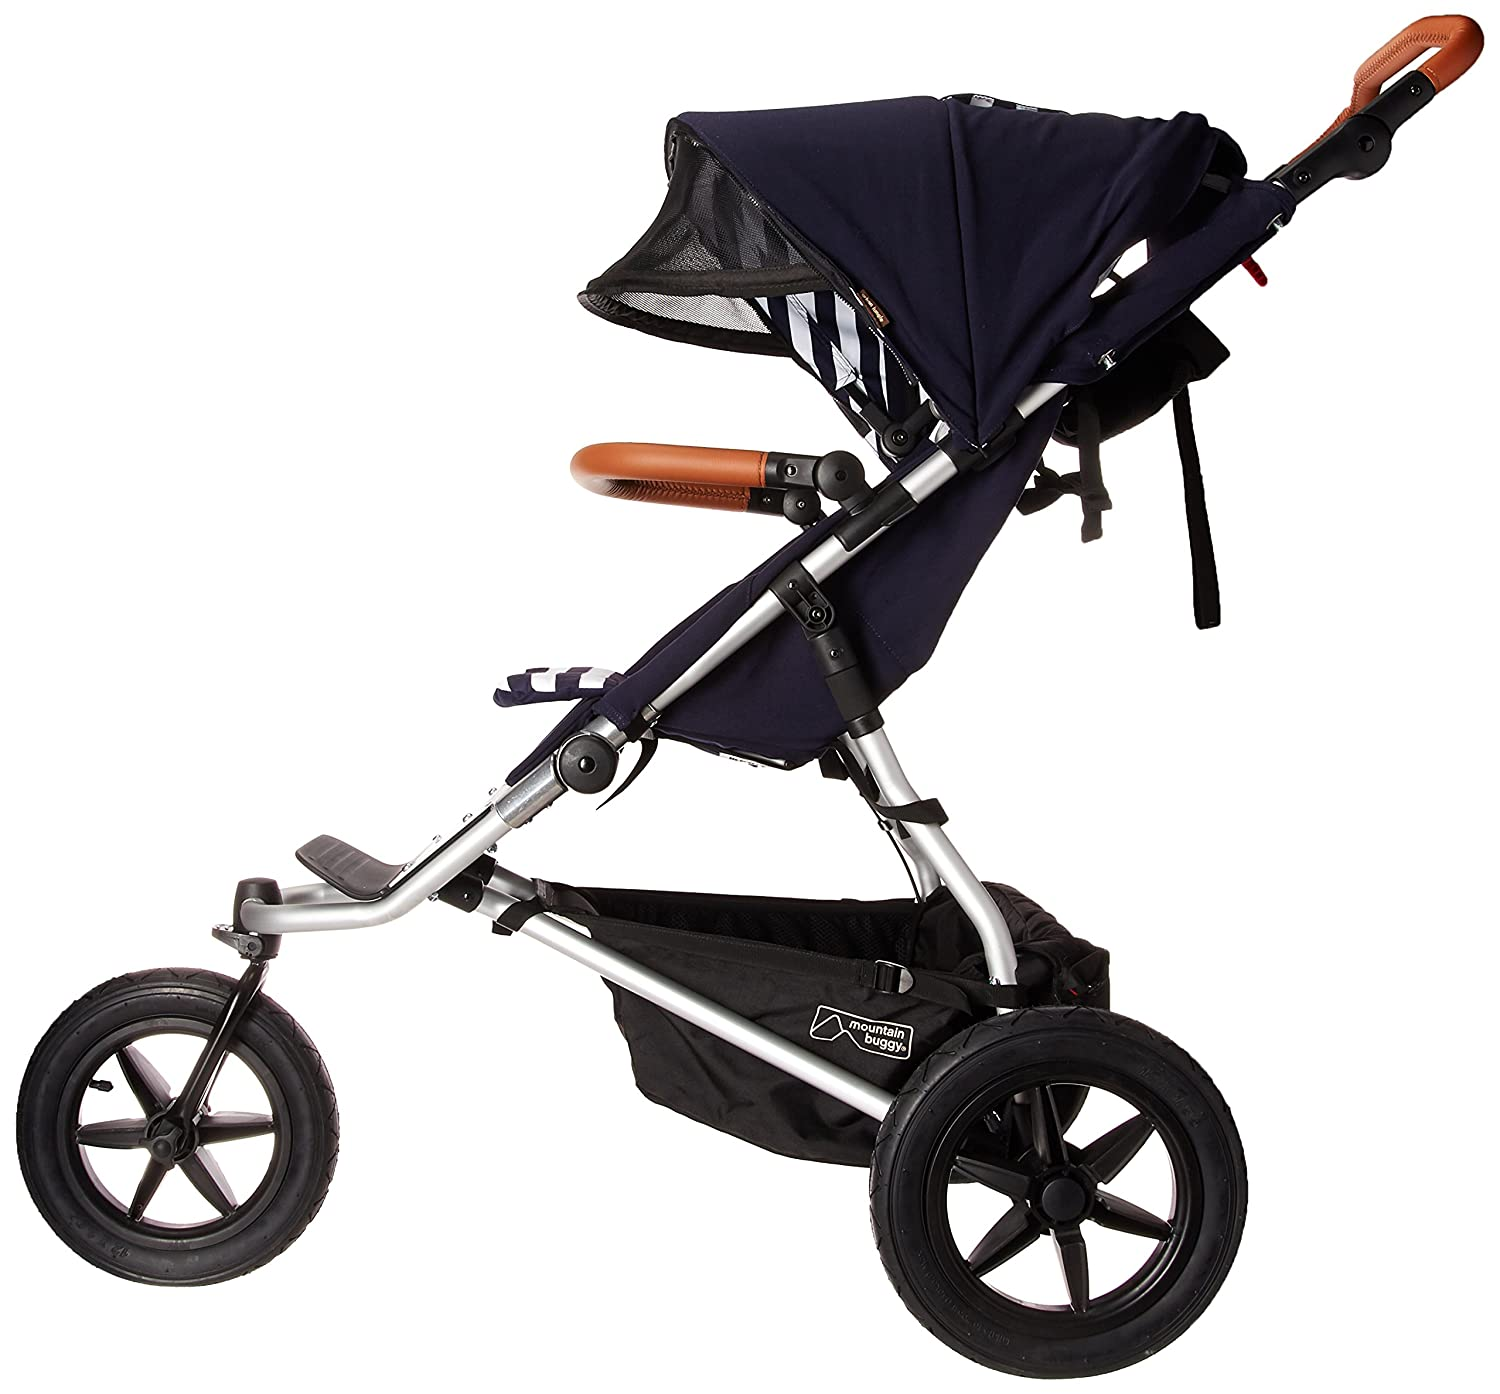 Baby Stroller Reclining Lightweight Folding Shock Absorbering Portable Two-way Push Cart For Four Seasons Use Travel For Kids Highly Polished Activity & Gear